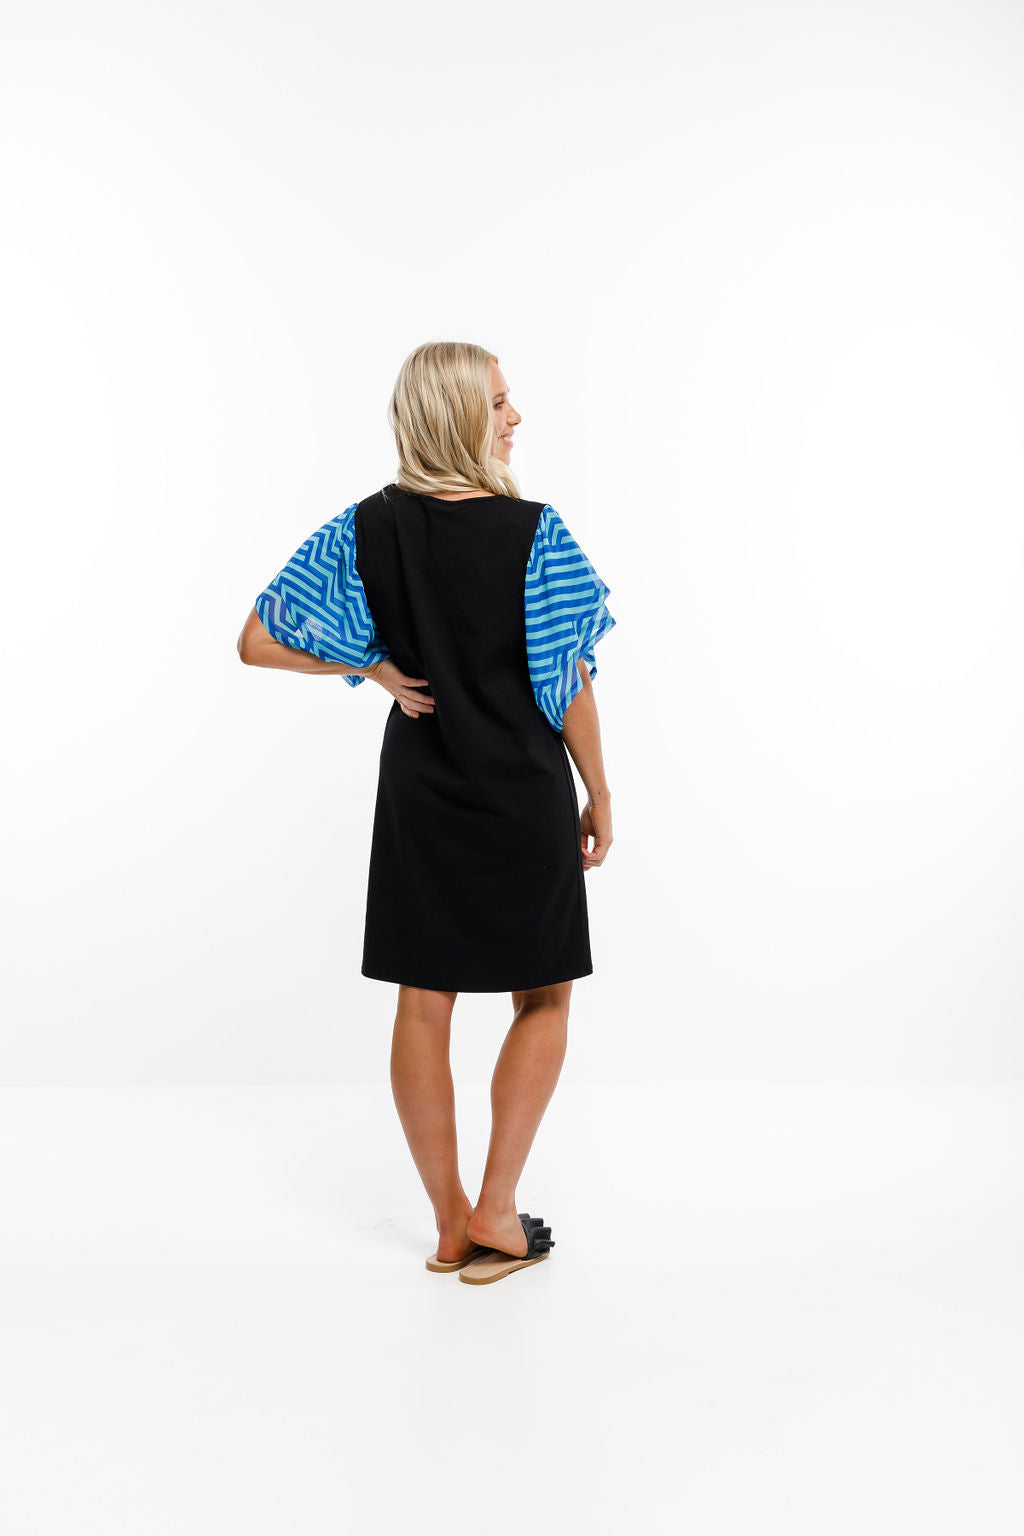 LOLA DRESS - Black with Blue Carnival Print Sleeves